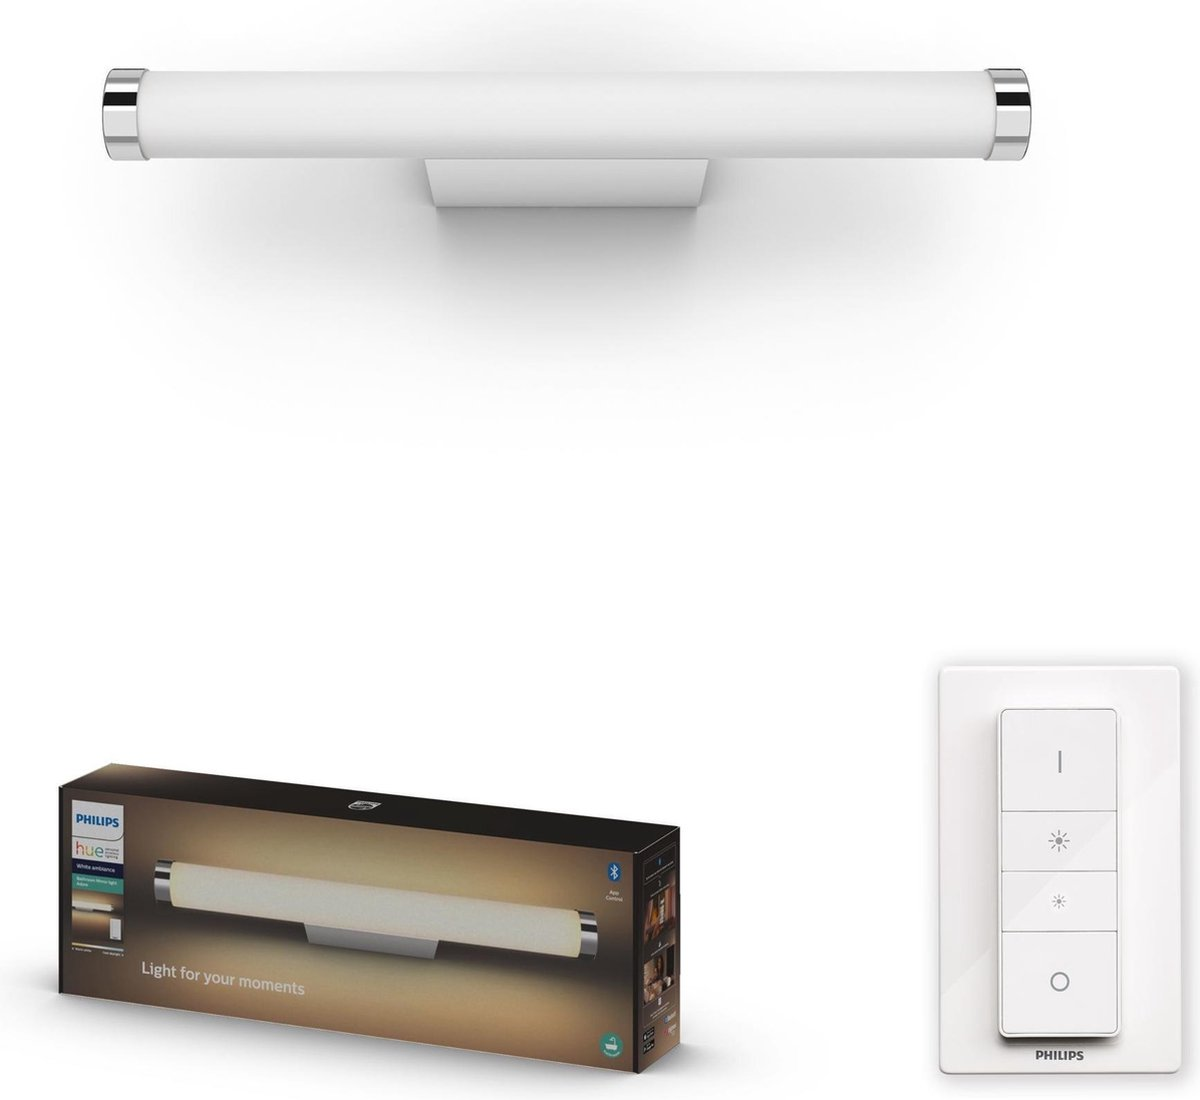 Philips Hue Adore Badkamer Wandlamp - White Ambiance - Geïntegreerd LED - Wit - 13W - Bluetooth - incl. Dimmer Switch